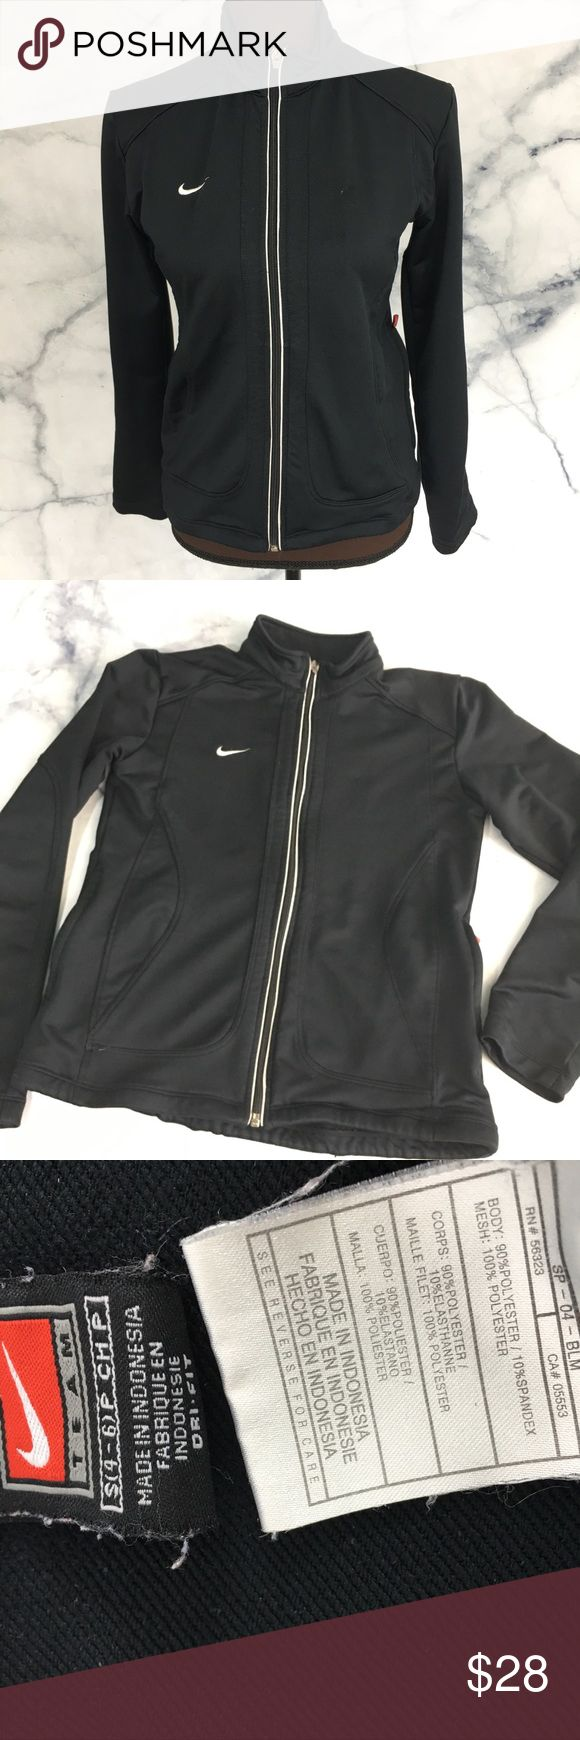 Nike | Dry Fit Zip Up Sweatshirt Jacket Black gently used sip up collar sweatshirt from Nike. One pin size hole in back shoulder areas, shown in last photo. Otherwise in Excellent condition! Black and White. Nike Tops Sweatshirts & Hoodies